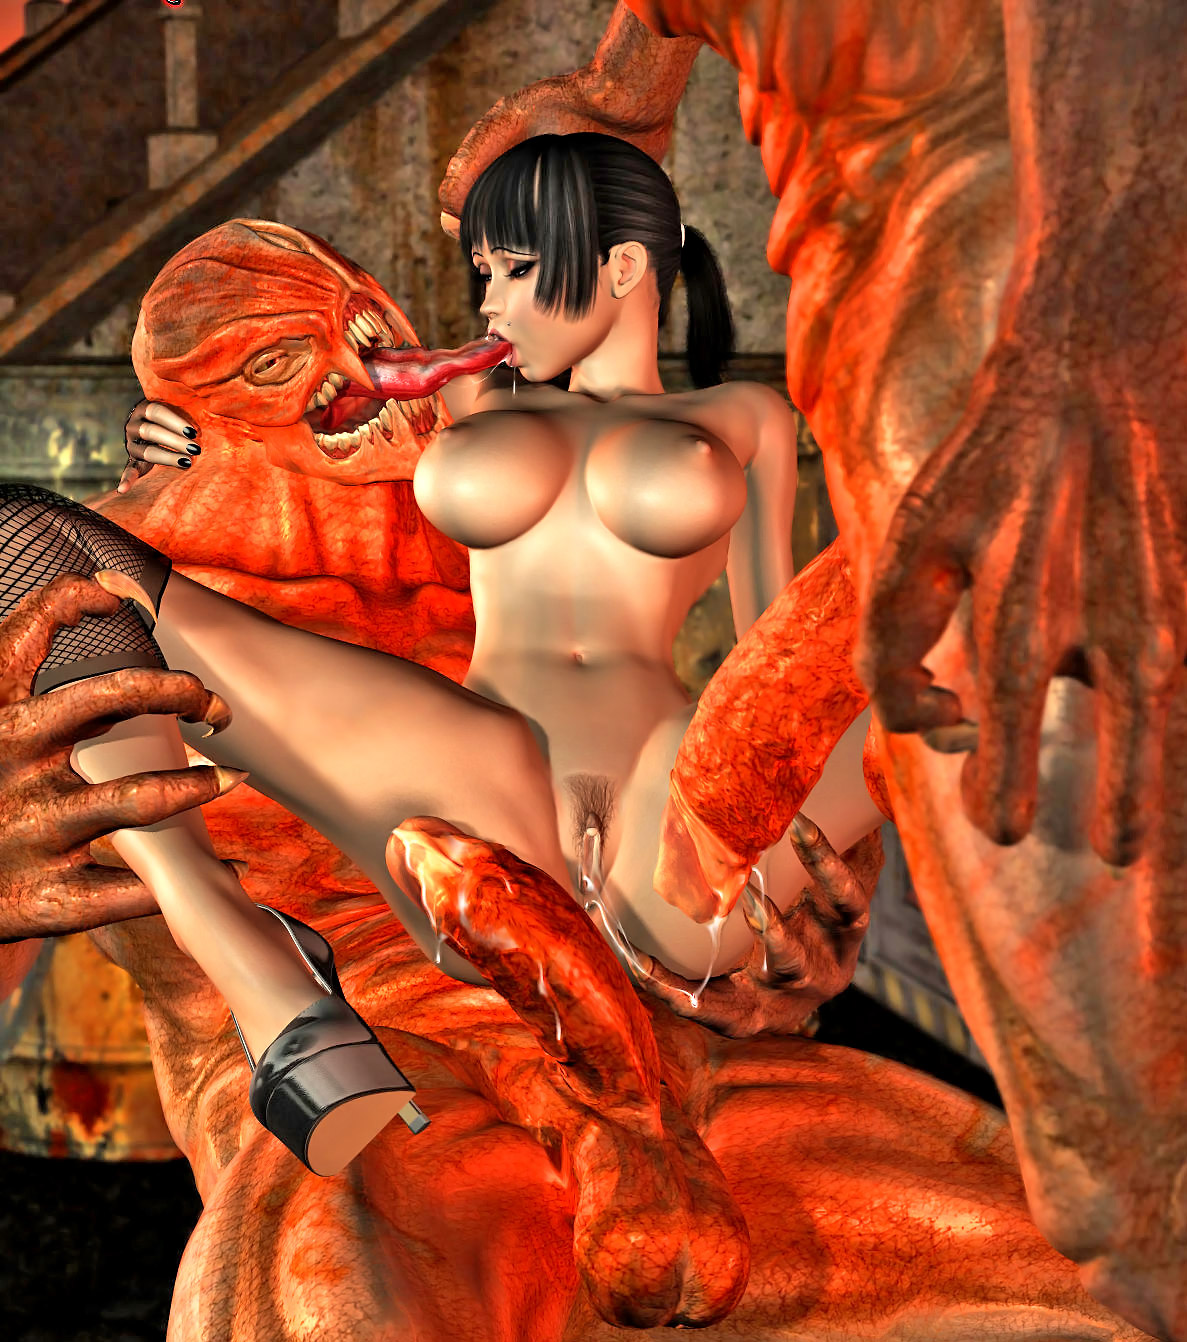 Demon cartoon sex scenes sex image